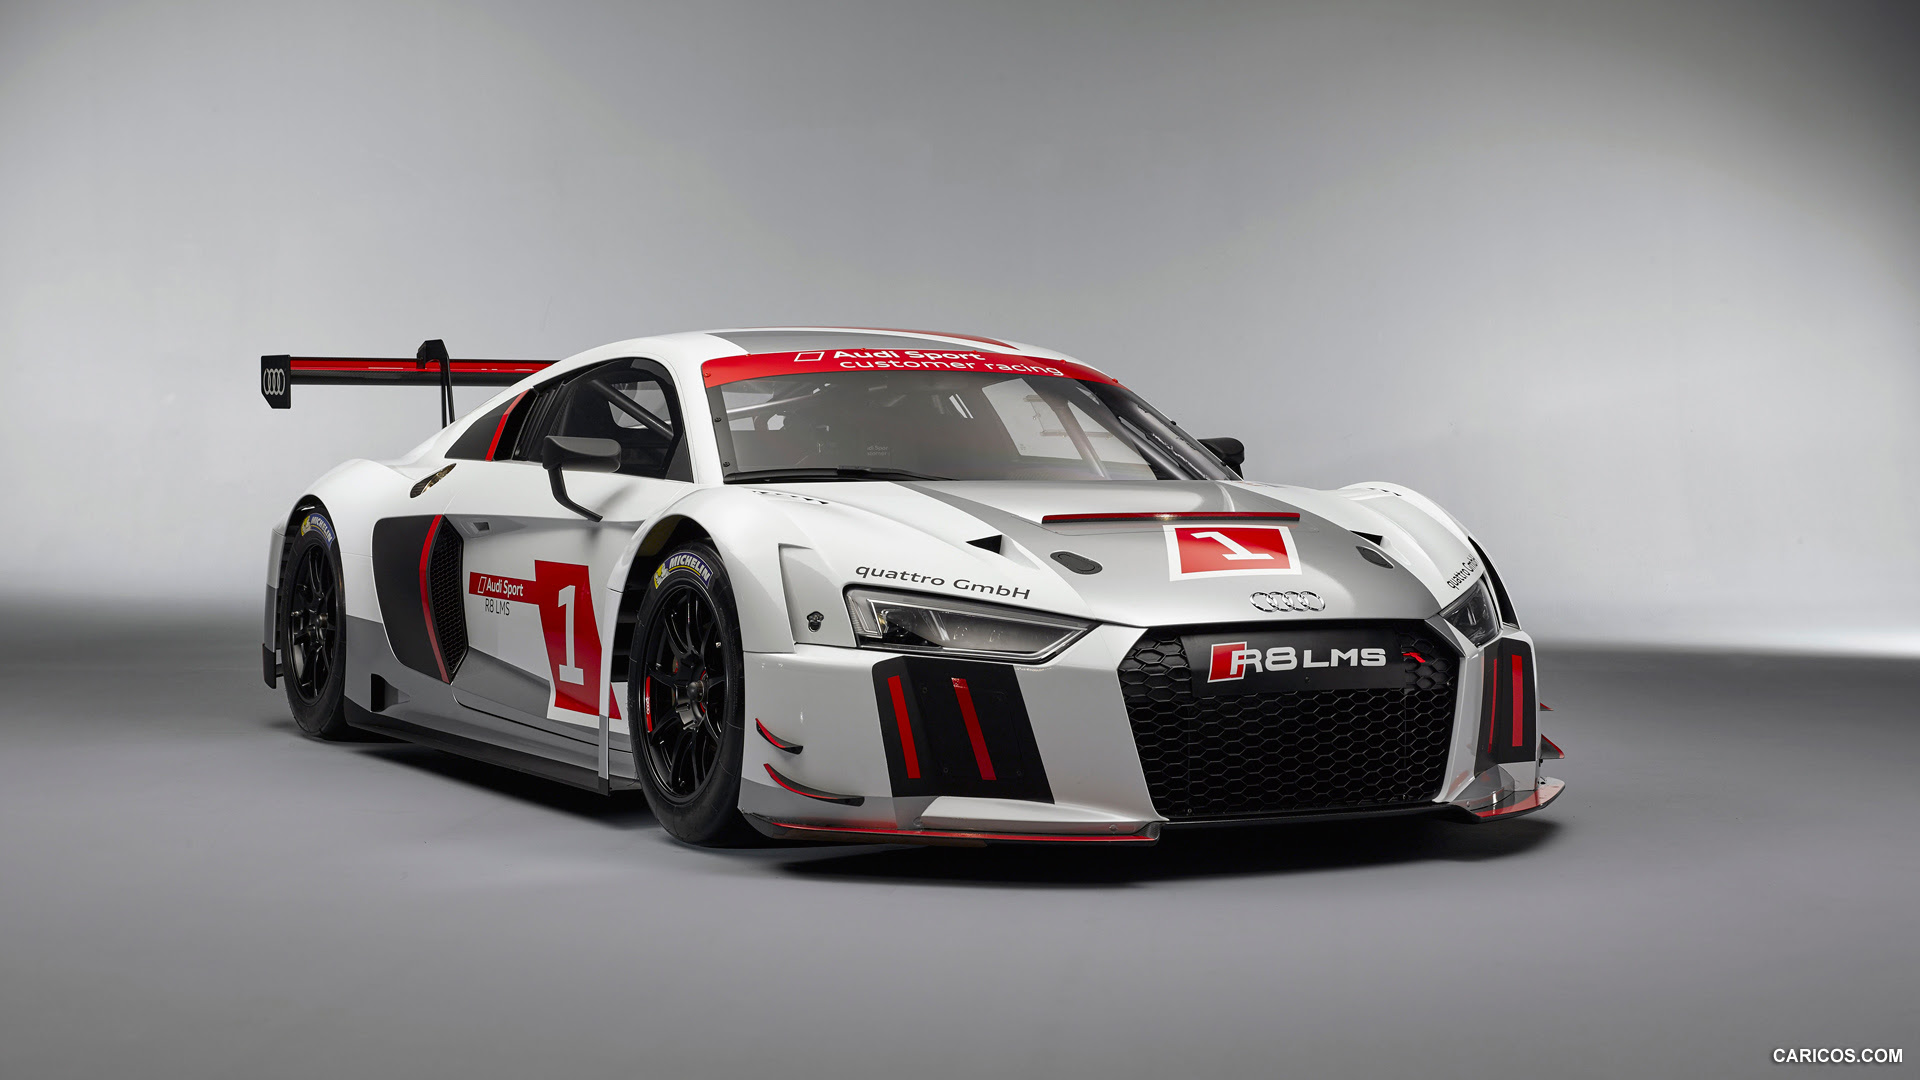 All In One Wallpapers 2015 Audi R8 LMS Front HD Wallpaper 6